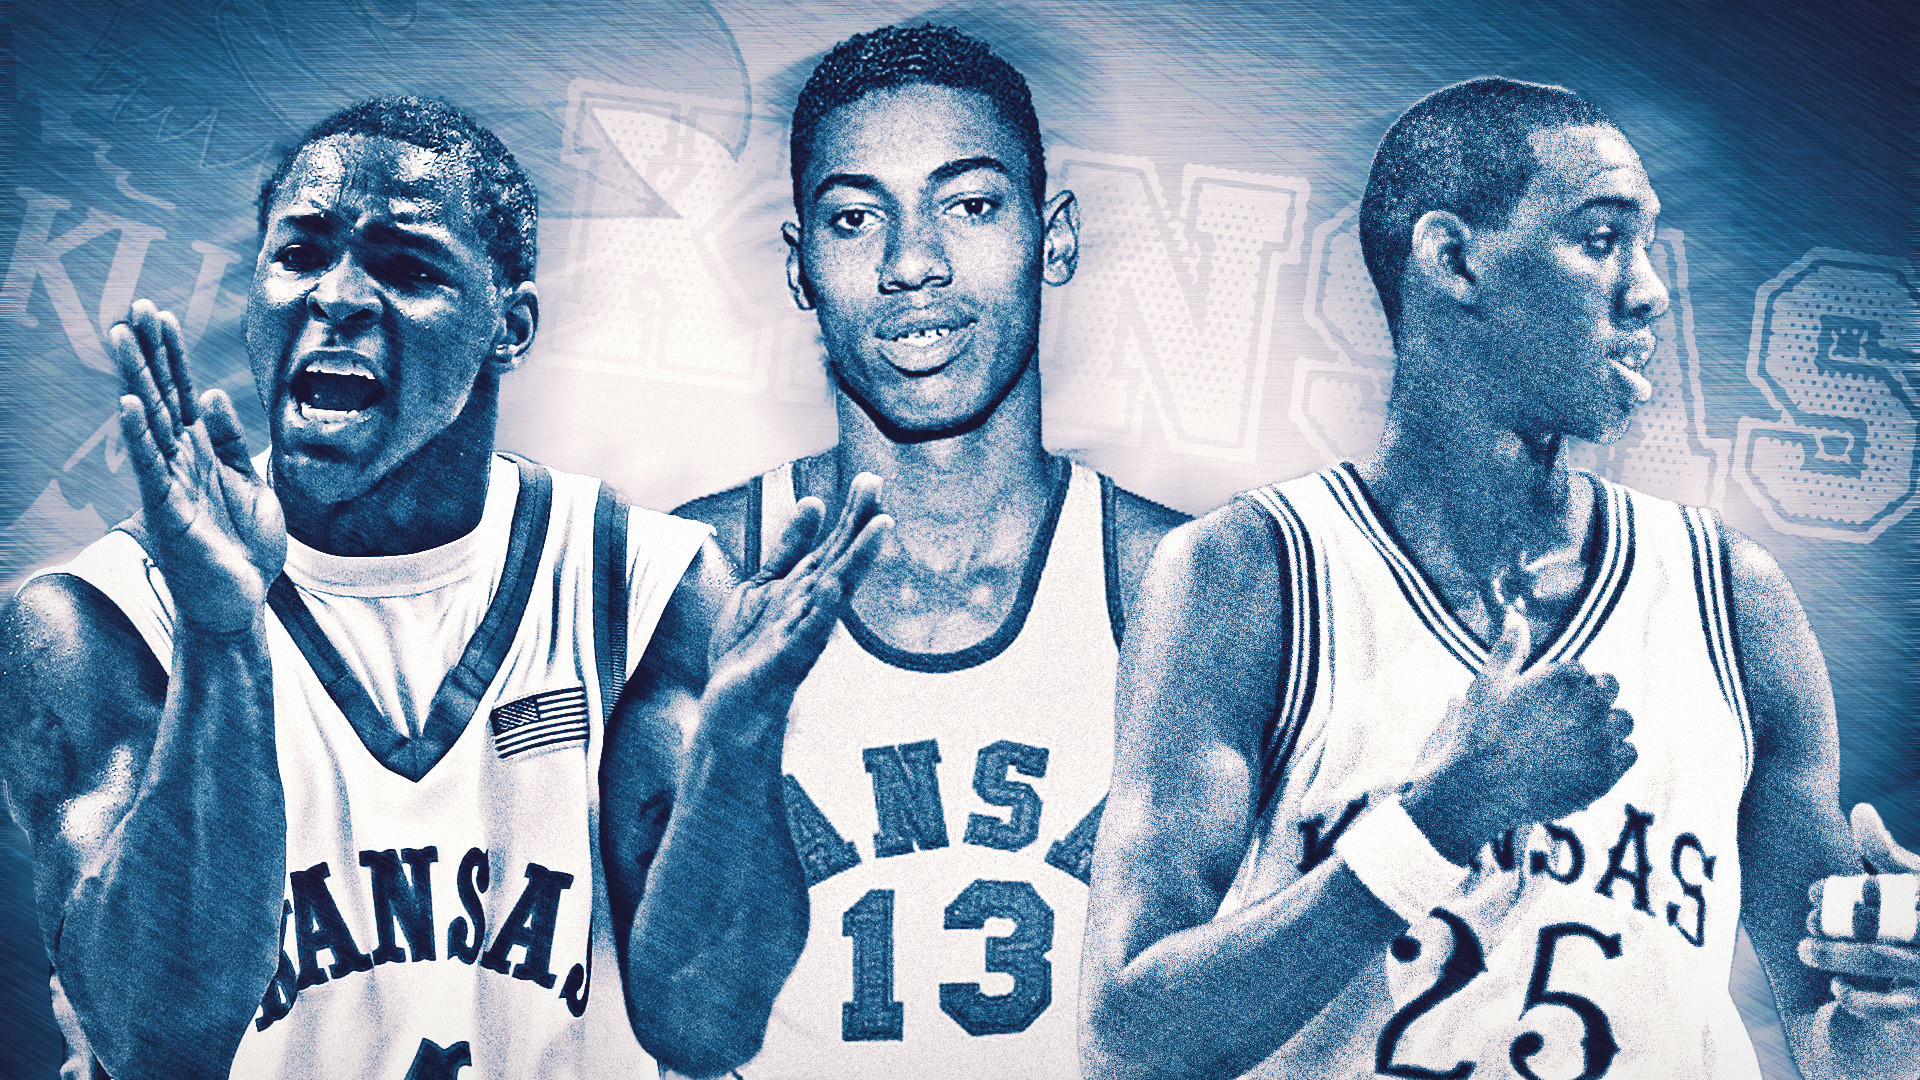 1920x1080 10 greatest Kansas basketball players of all time